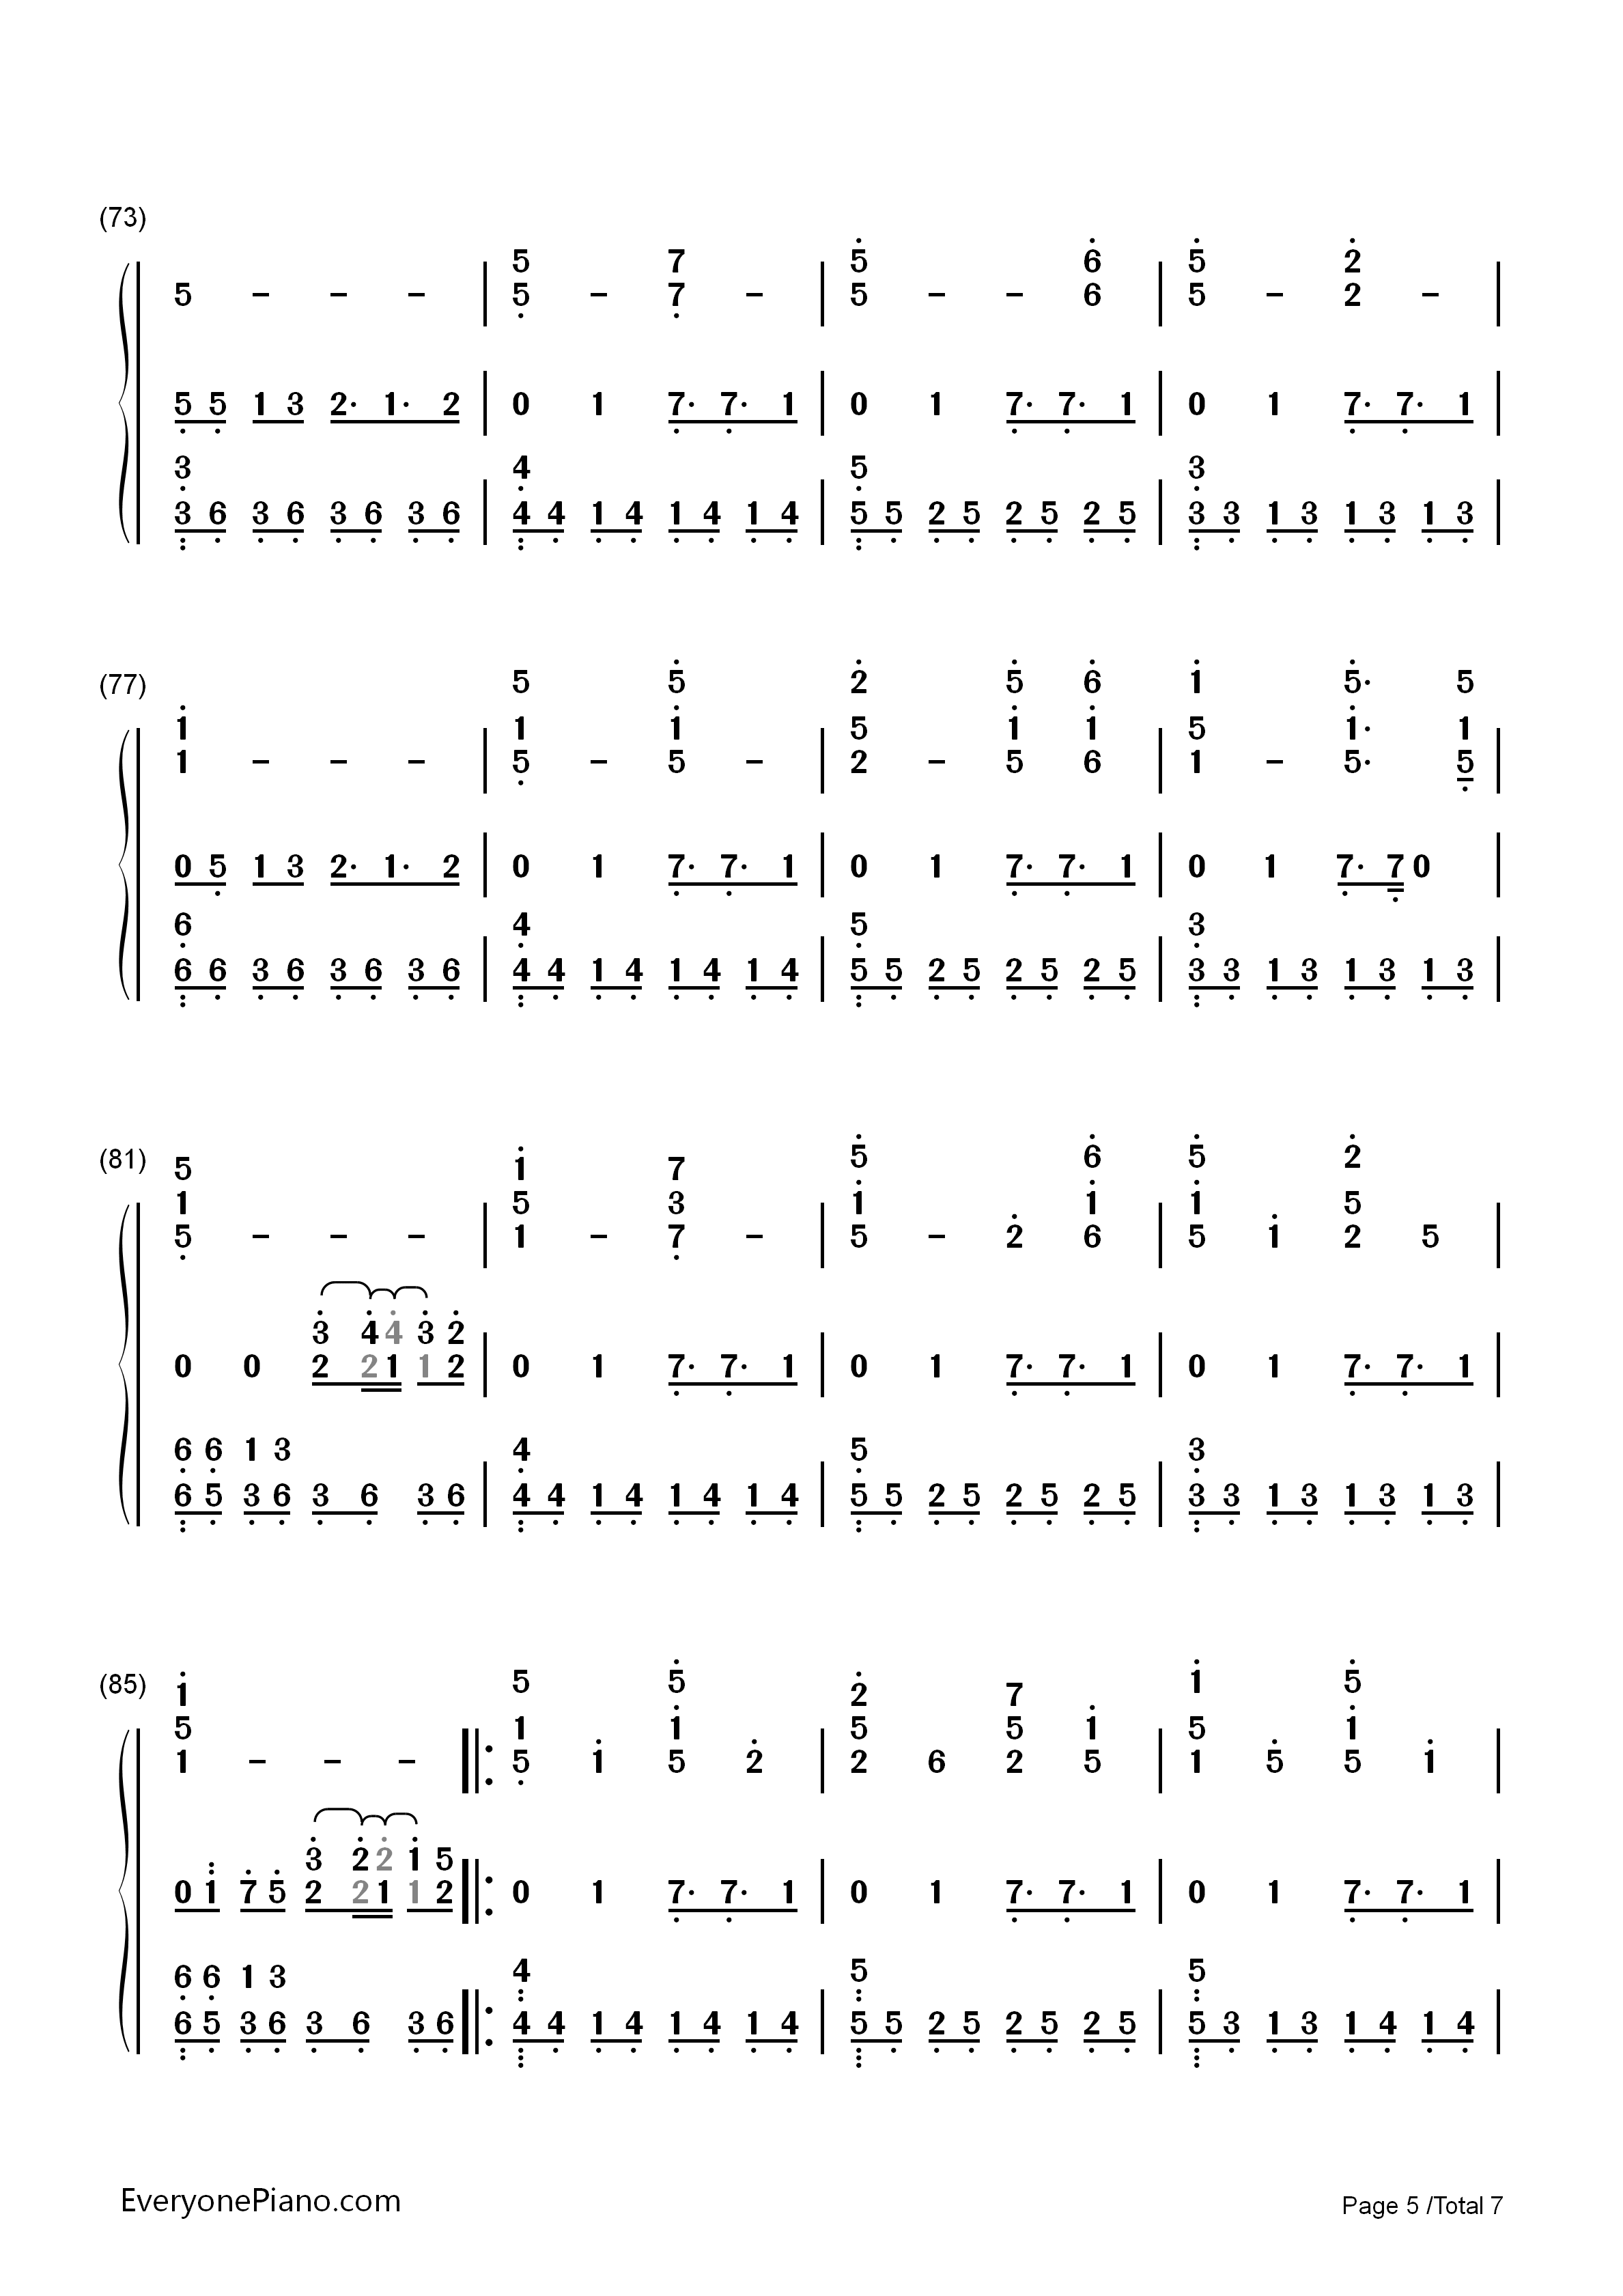 Undertale Undertale Theme Numbered Musical Notation